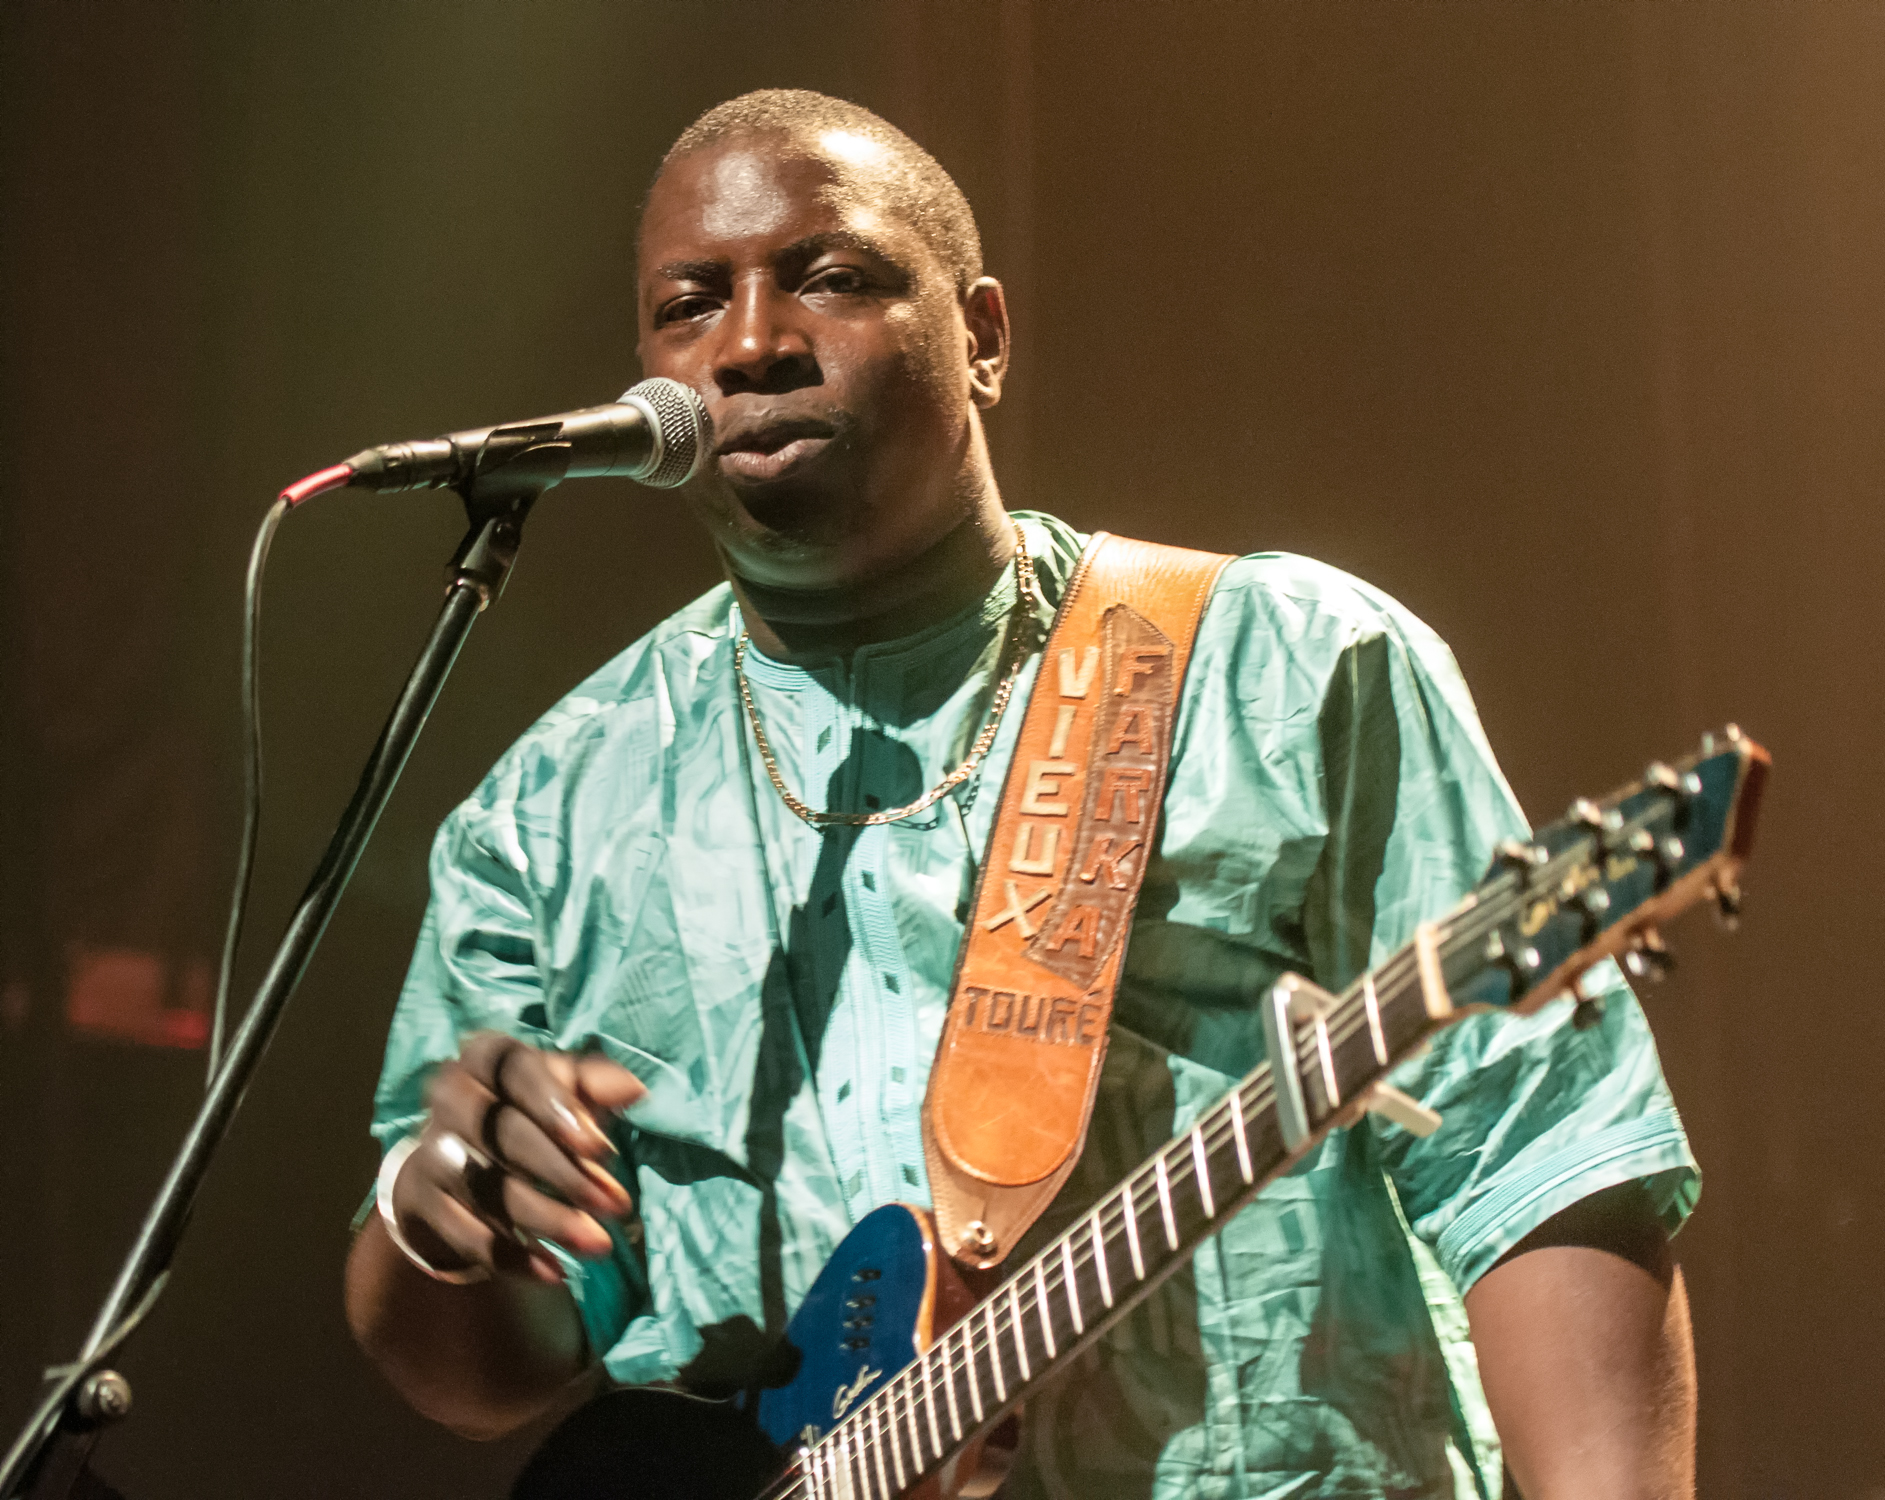 Vieux farka toure at the montreal international jazz festival 2013